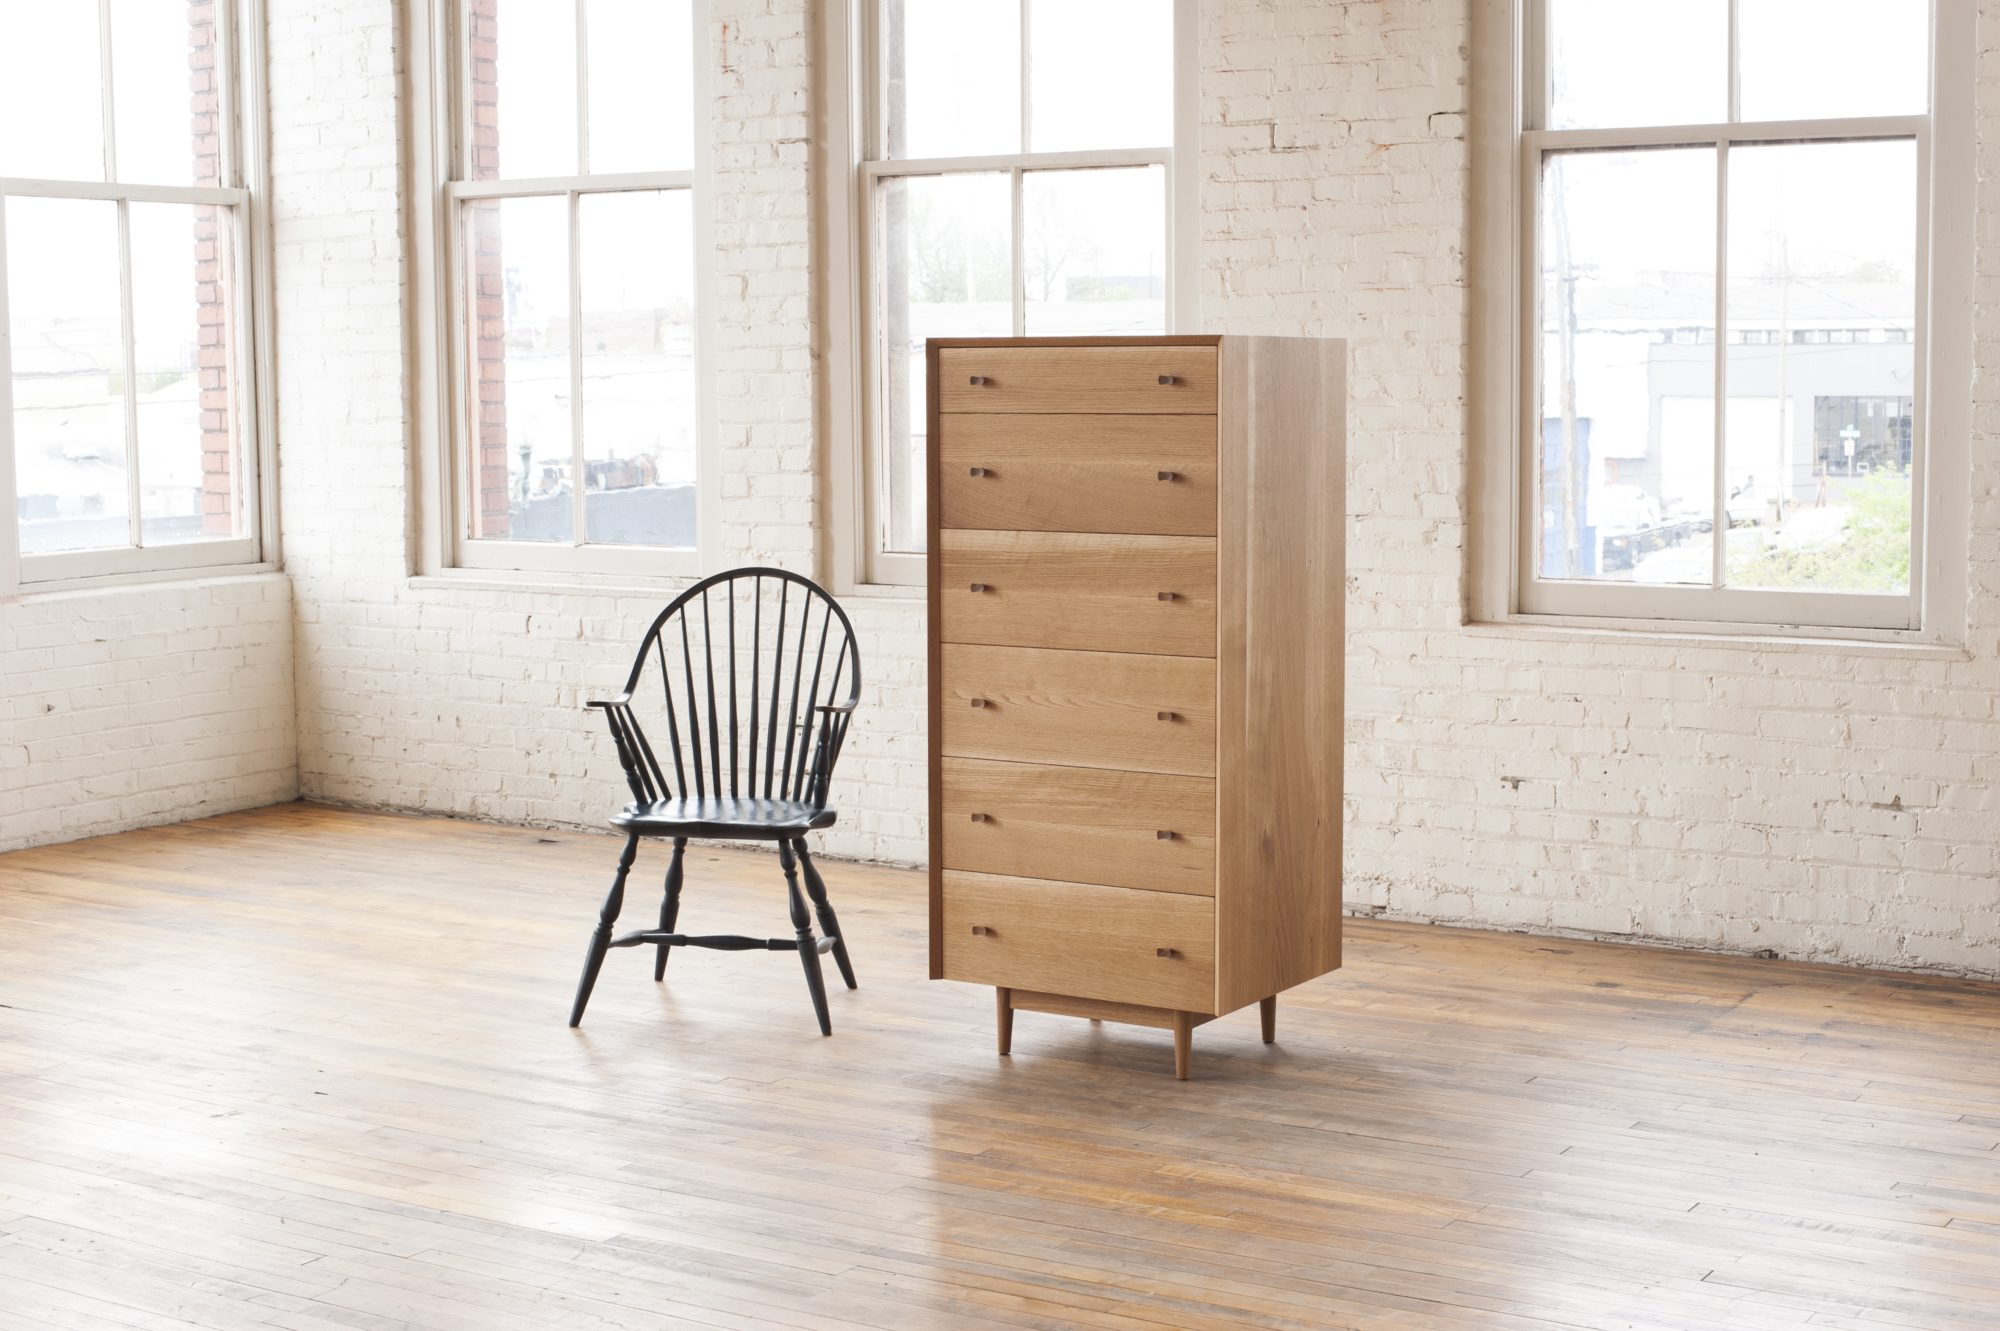 6 Bedroom Storage Solutions – SURFACE